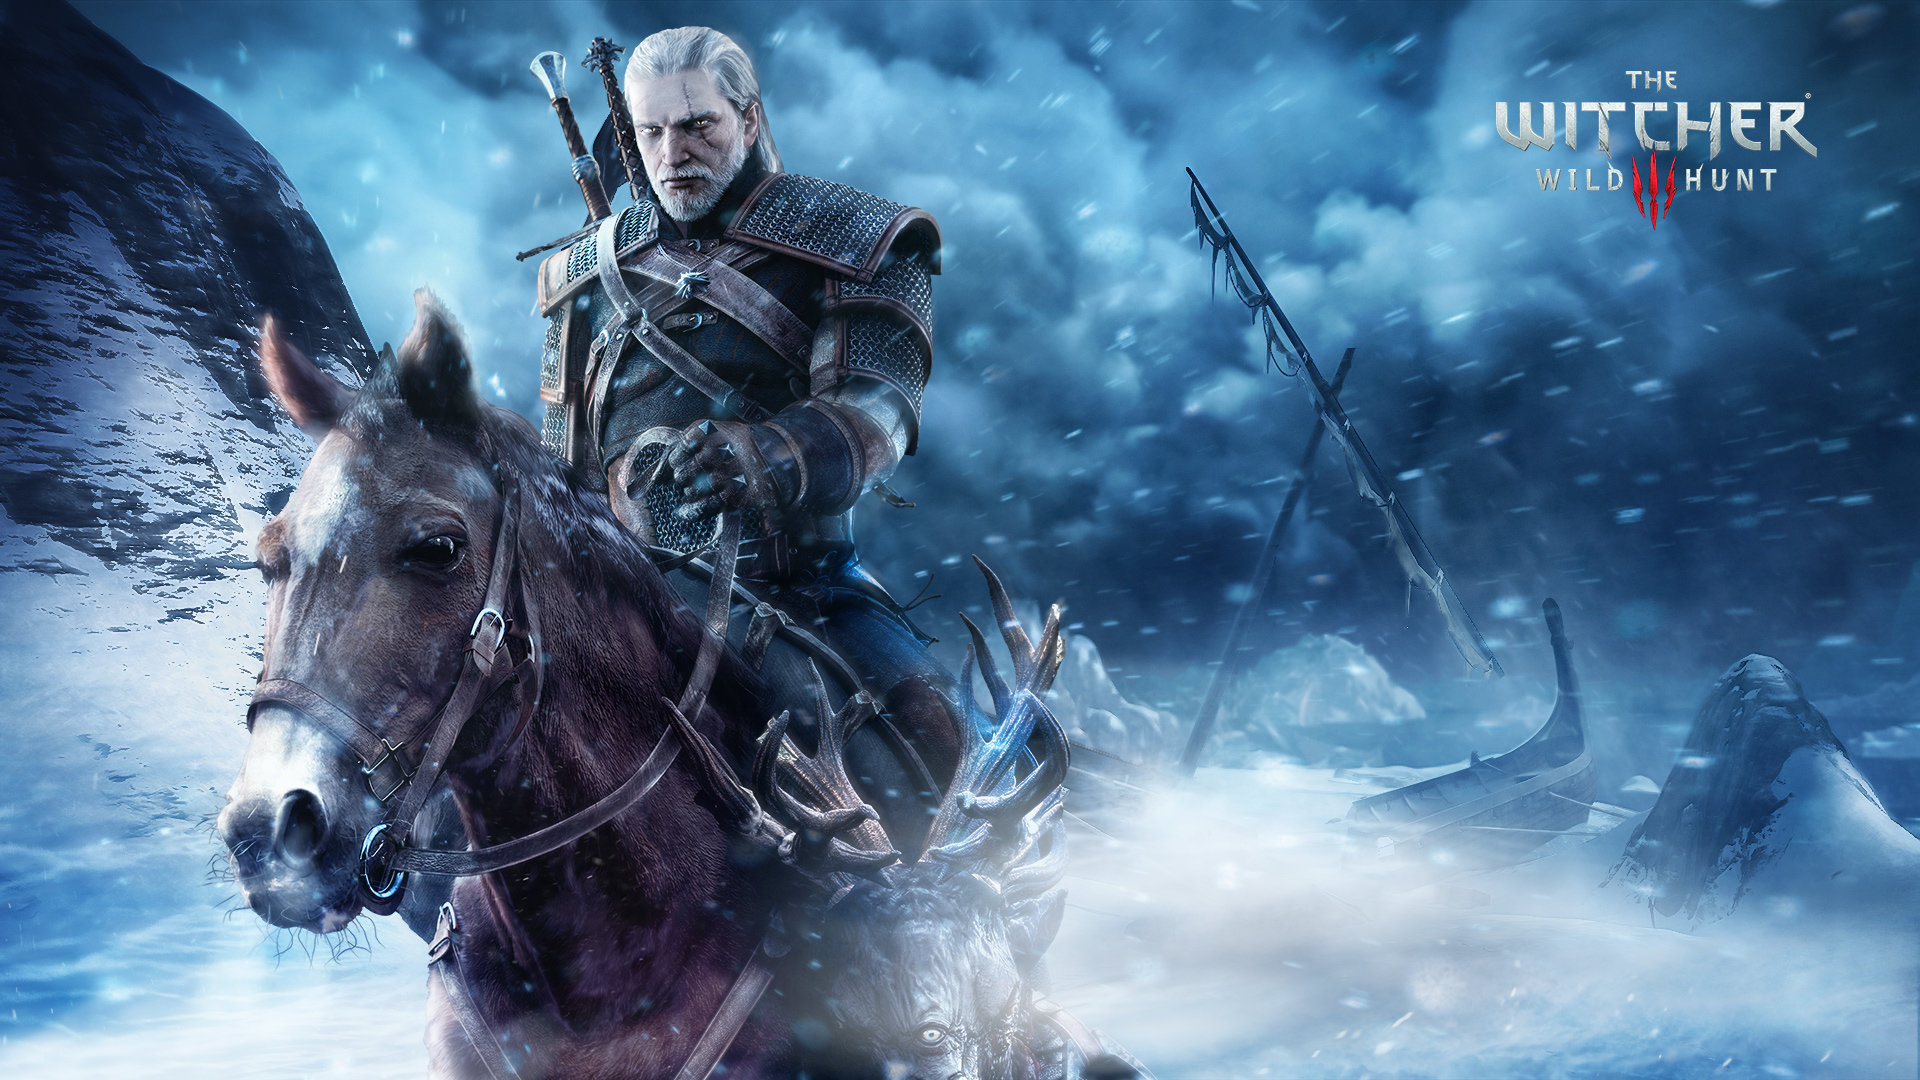 Best The Witcher 3 Wild Hunt Wallpaper Id 17891 For High